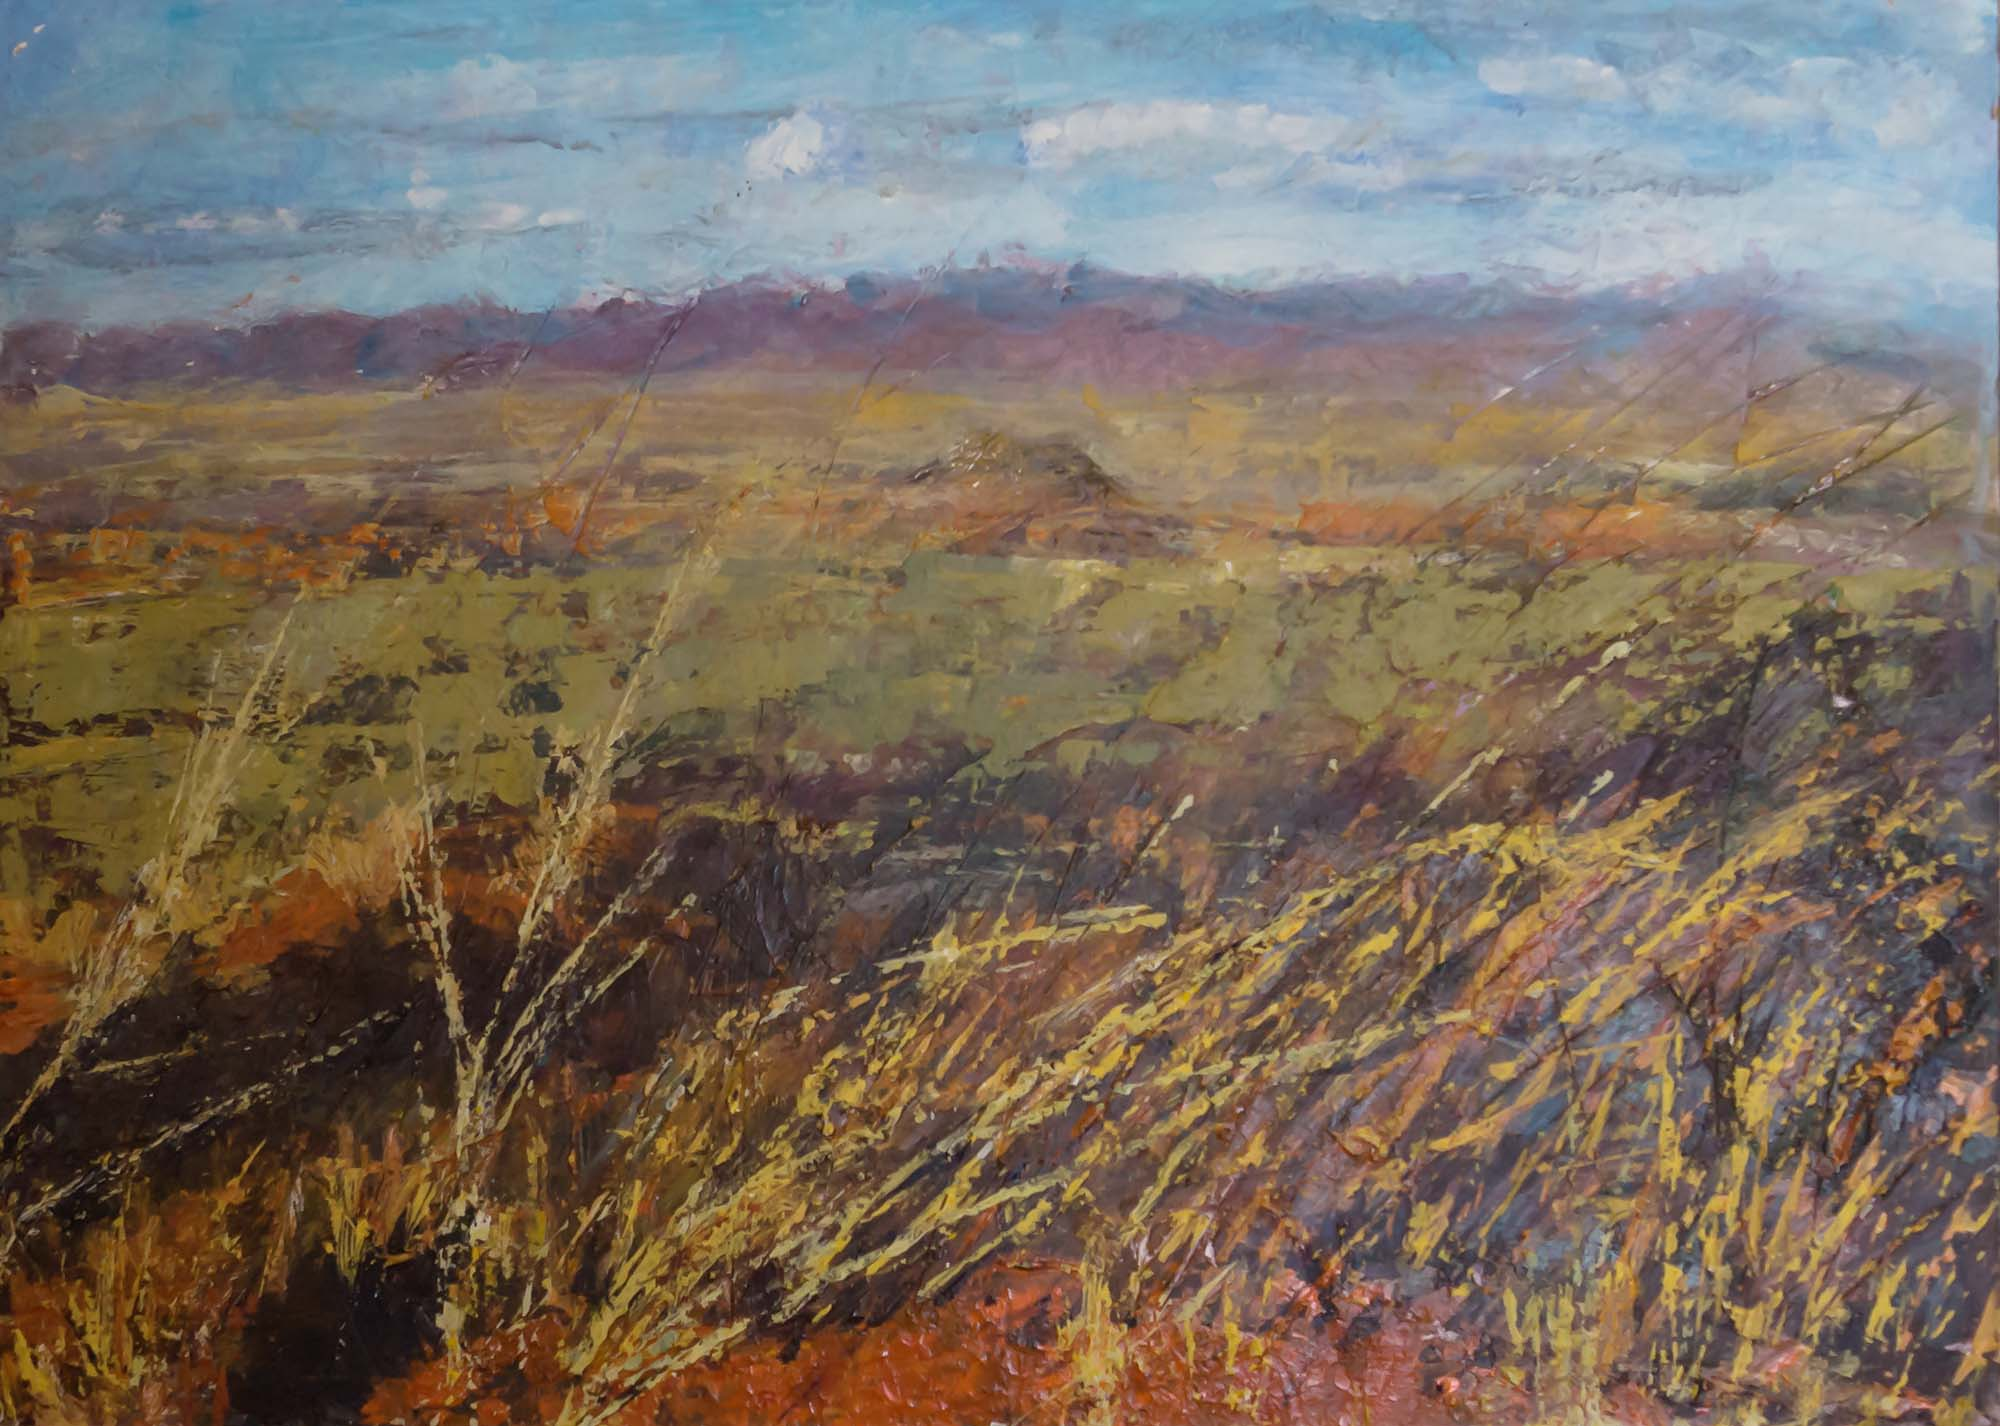 African wide landscape with grass and steppe by Ria Kieboom